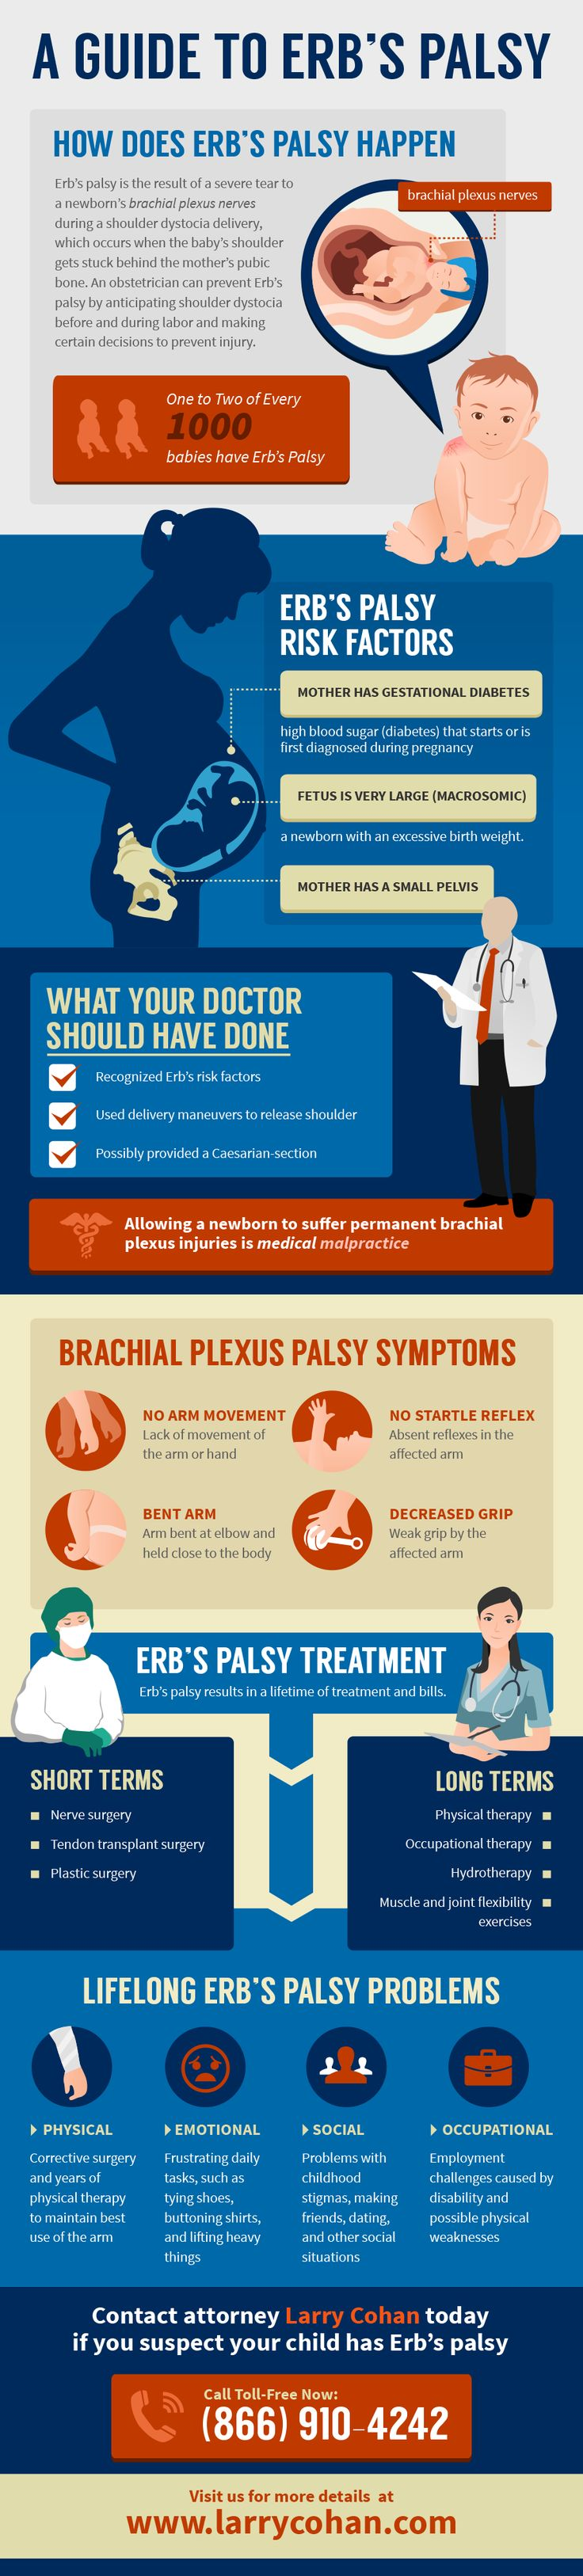 How Does Erb's Palsy Happen   #Infographic #Health  #ErbsPalsy #infografía